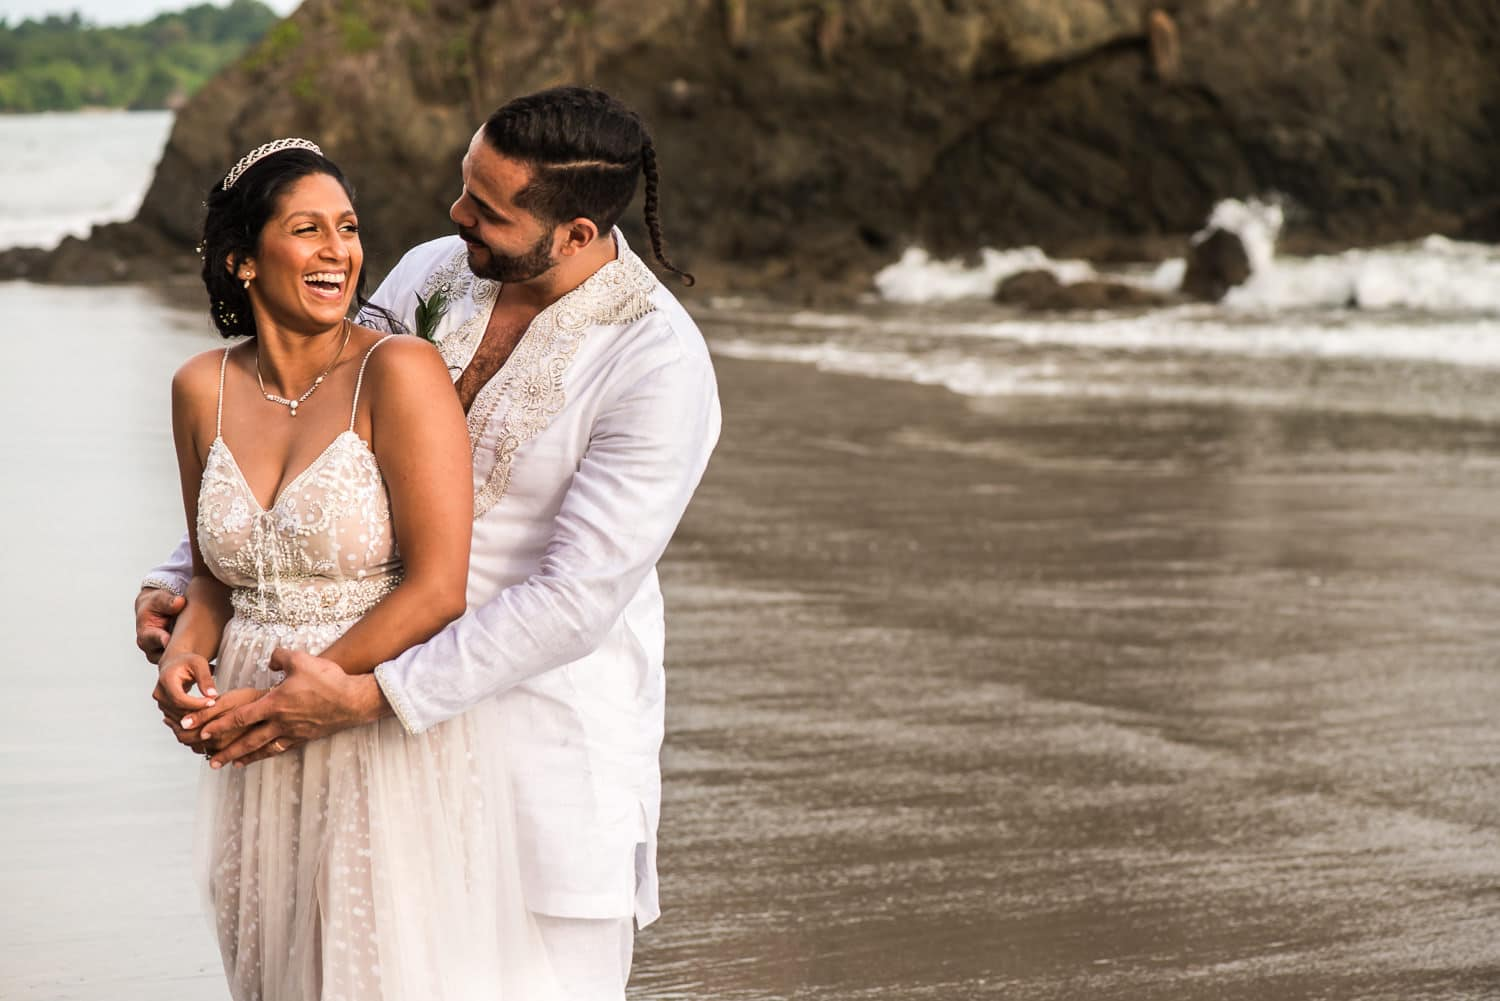 COSTA RICA WEDDING PHOTOGRAPHER | VILLA PUNTO DE VISTA